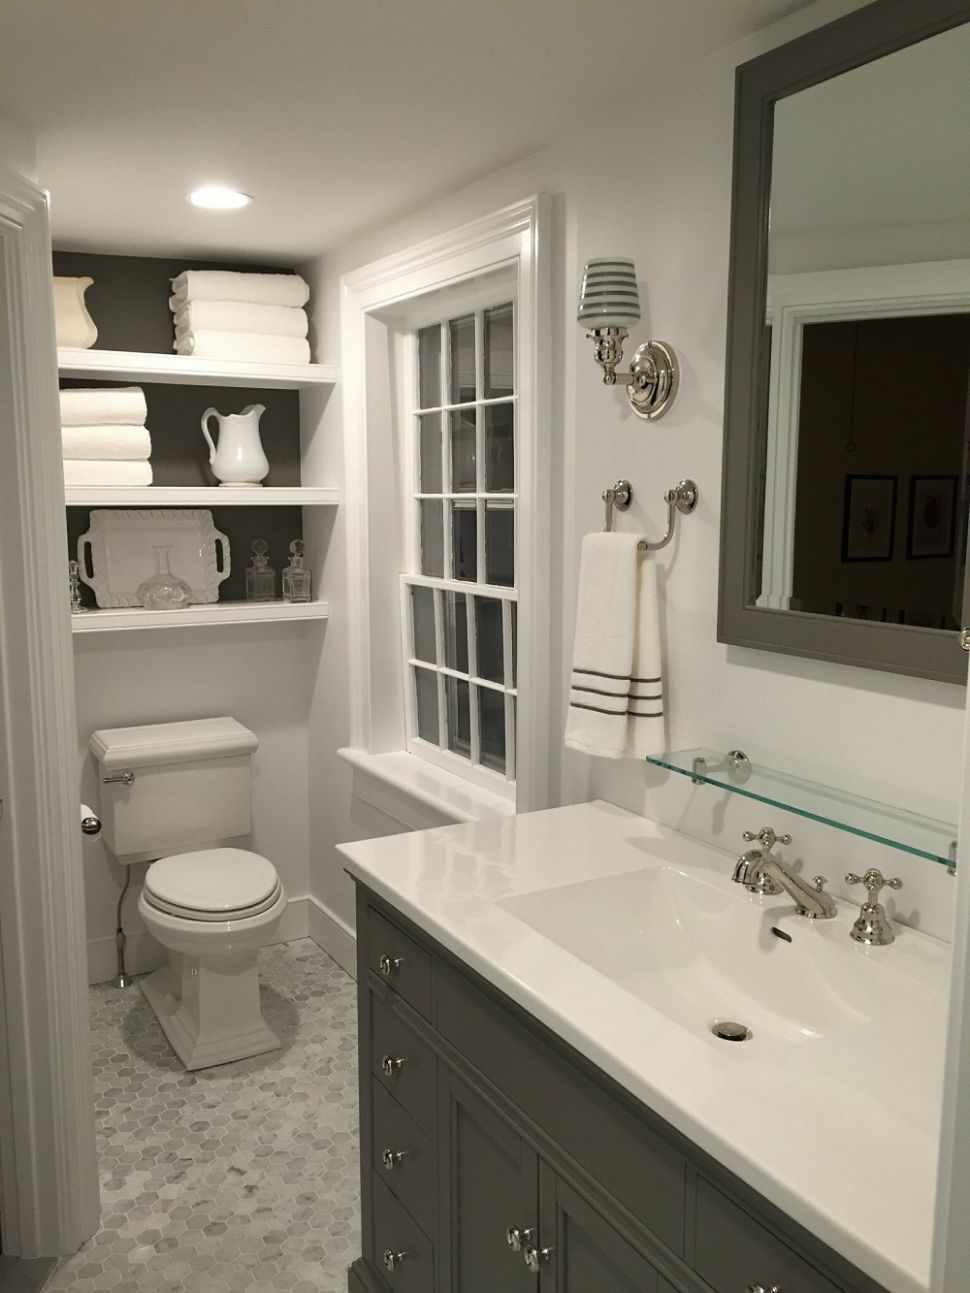 12 Bathroom Ideas Grey And White to Relax Your Day - bathroom ideas in grey